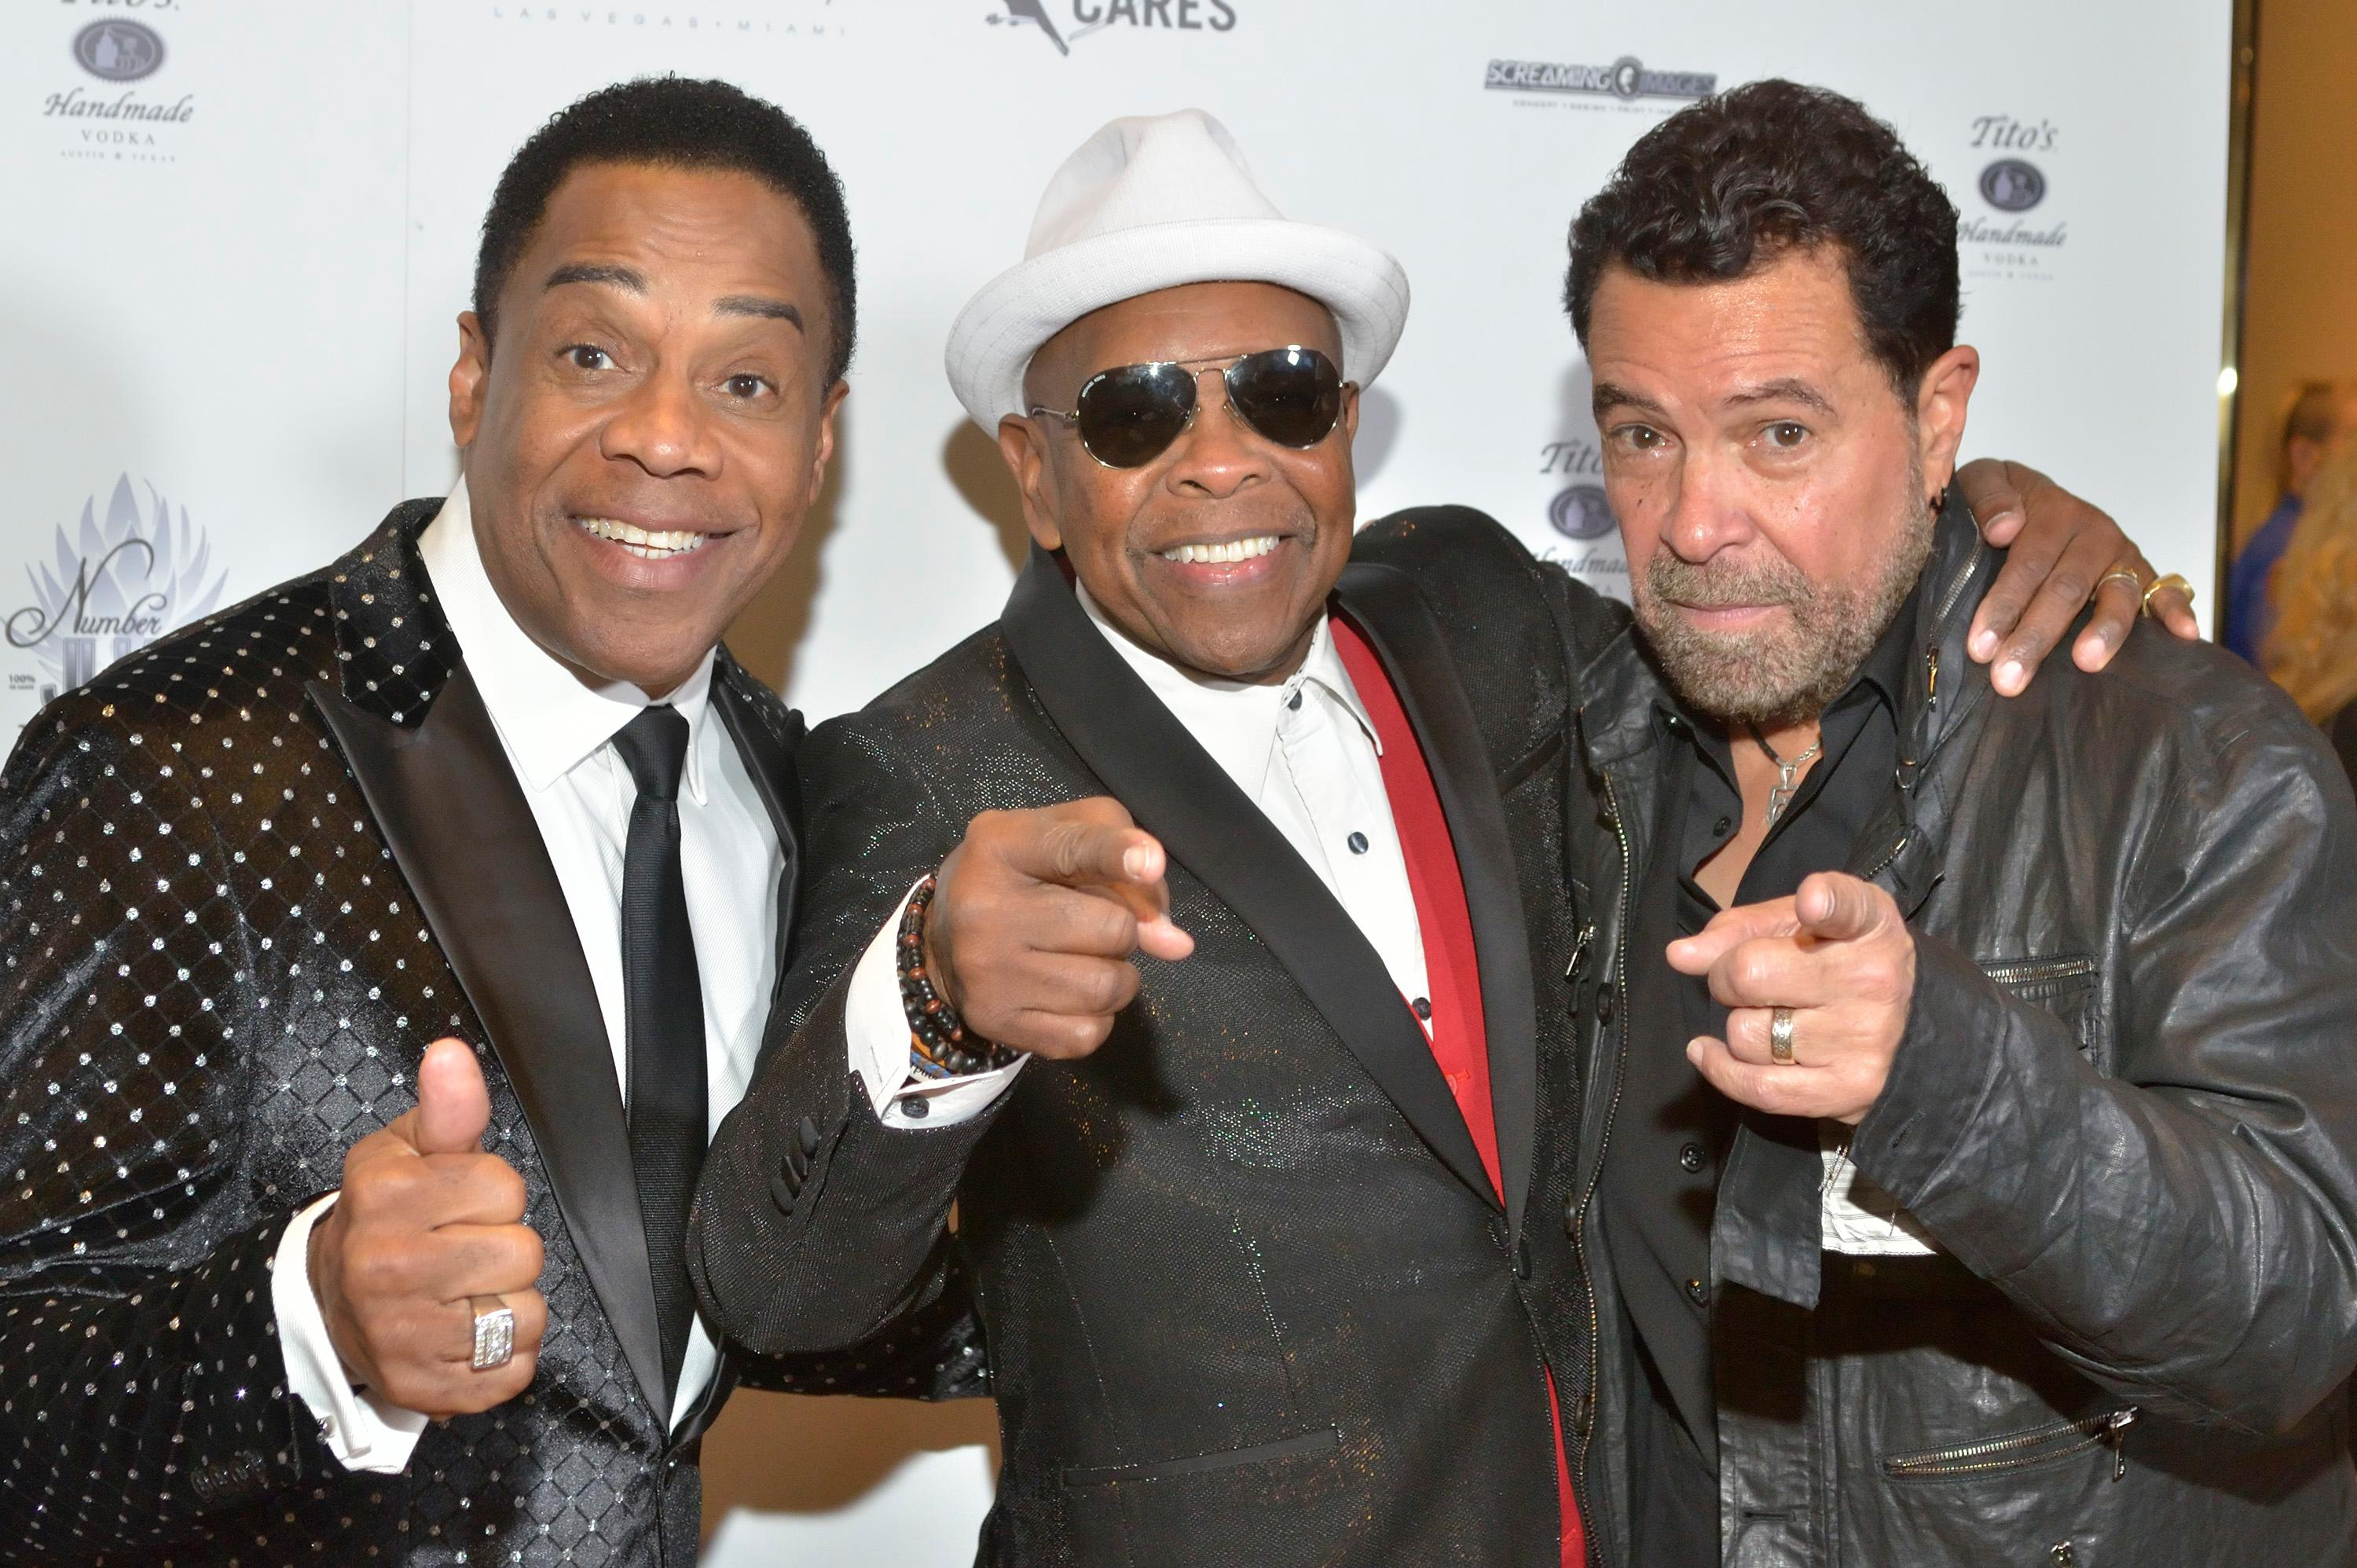 "Earl Turner, left, Bubba Knight, center, and Clint Holmes are shown at the ""Vegas Cares"" benefit concert at the Venetian Theatre in the Venetian hotel-casino at 3355 S. Las Vegas Blvd in Las Vegas on Sunday, Nov 5, 2017. The concert was sponsored by a group of Las Vegas entertainers, producers and business professionals to honor the victims and first responders from shooting at the Route 91 Harvest festival. (Photo/Las Vegas News Bureau/Bill Hughes)"